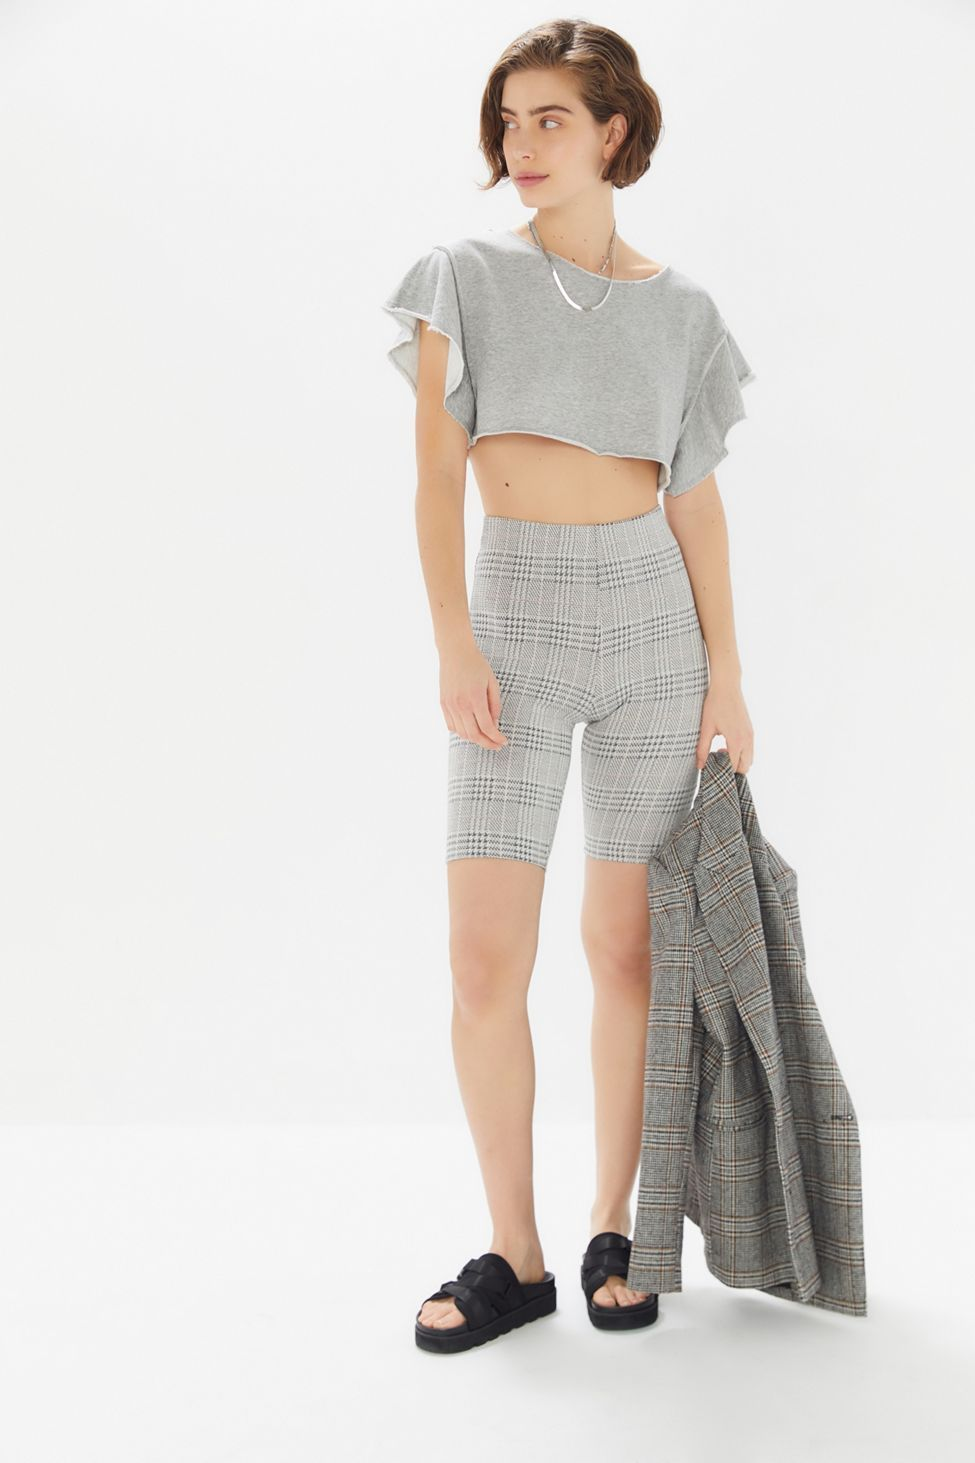 Upcycled Off The Shoulder WhiteGrey Crop Top